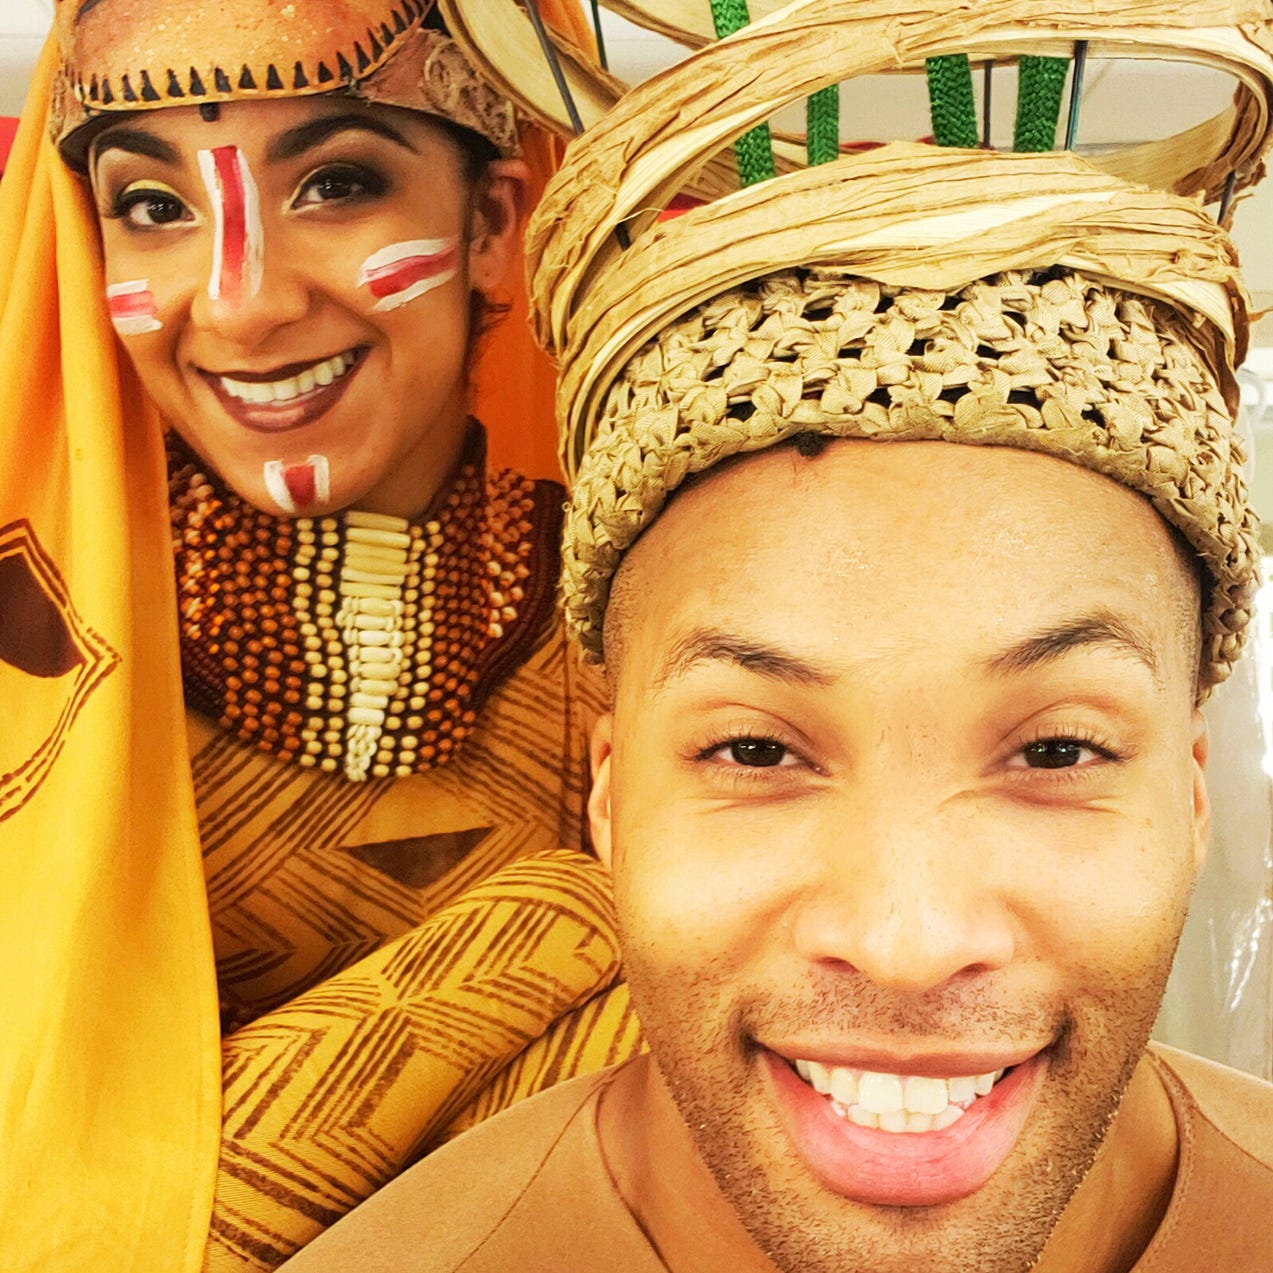 Simba and Nala are not the only love story on this 'Lion King' tour